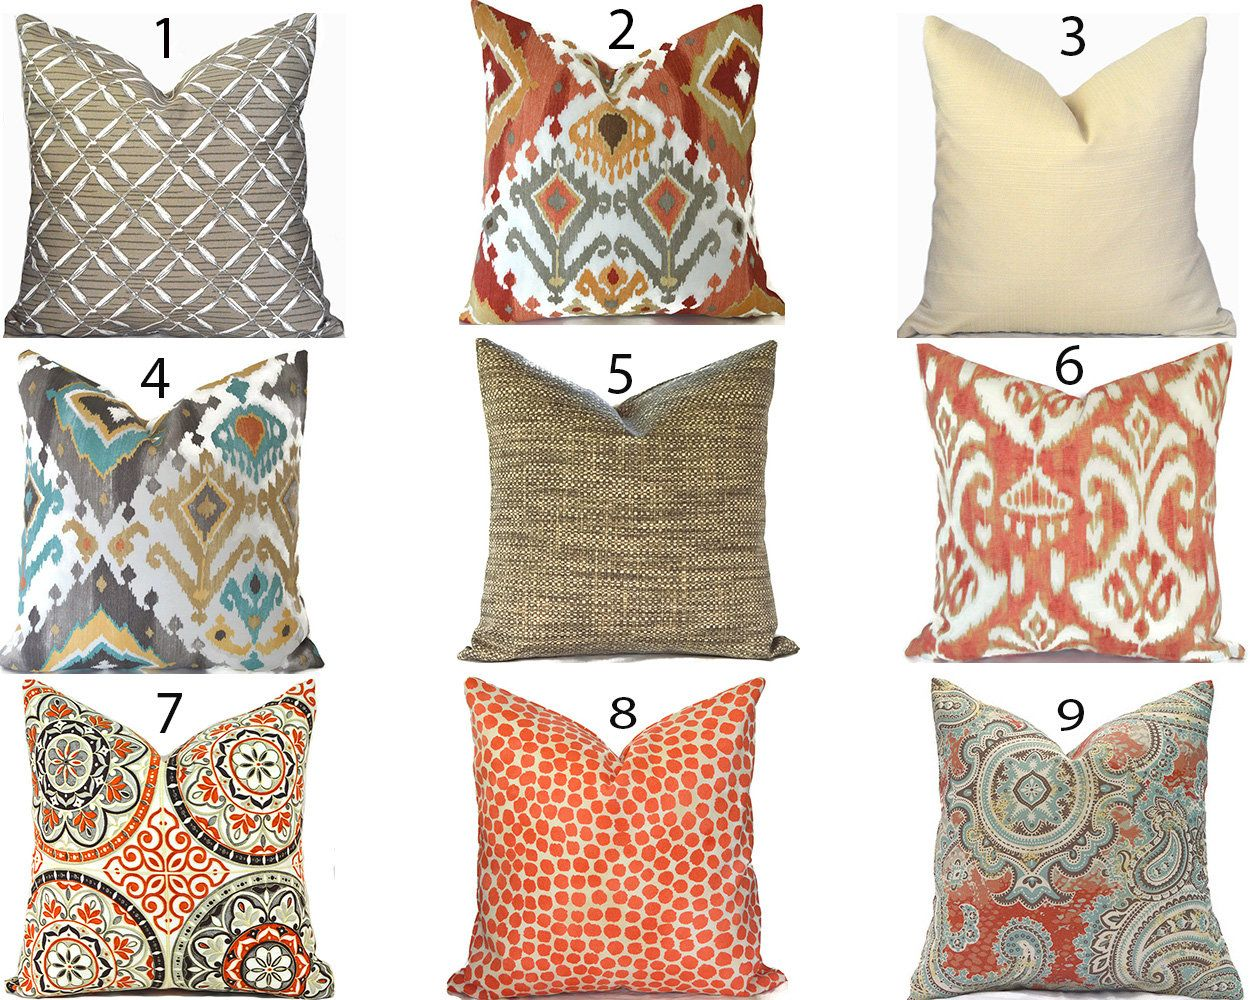 Outdoor Pillow Covers Any Size Decorative Home Decor Burnt Orange